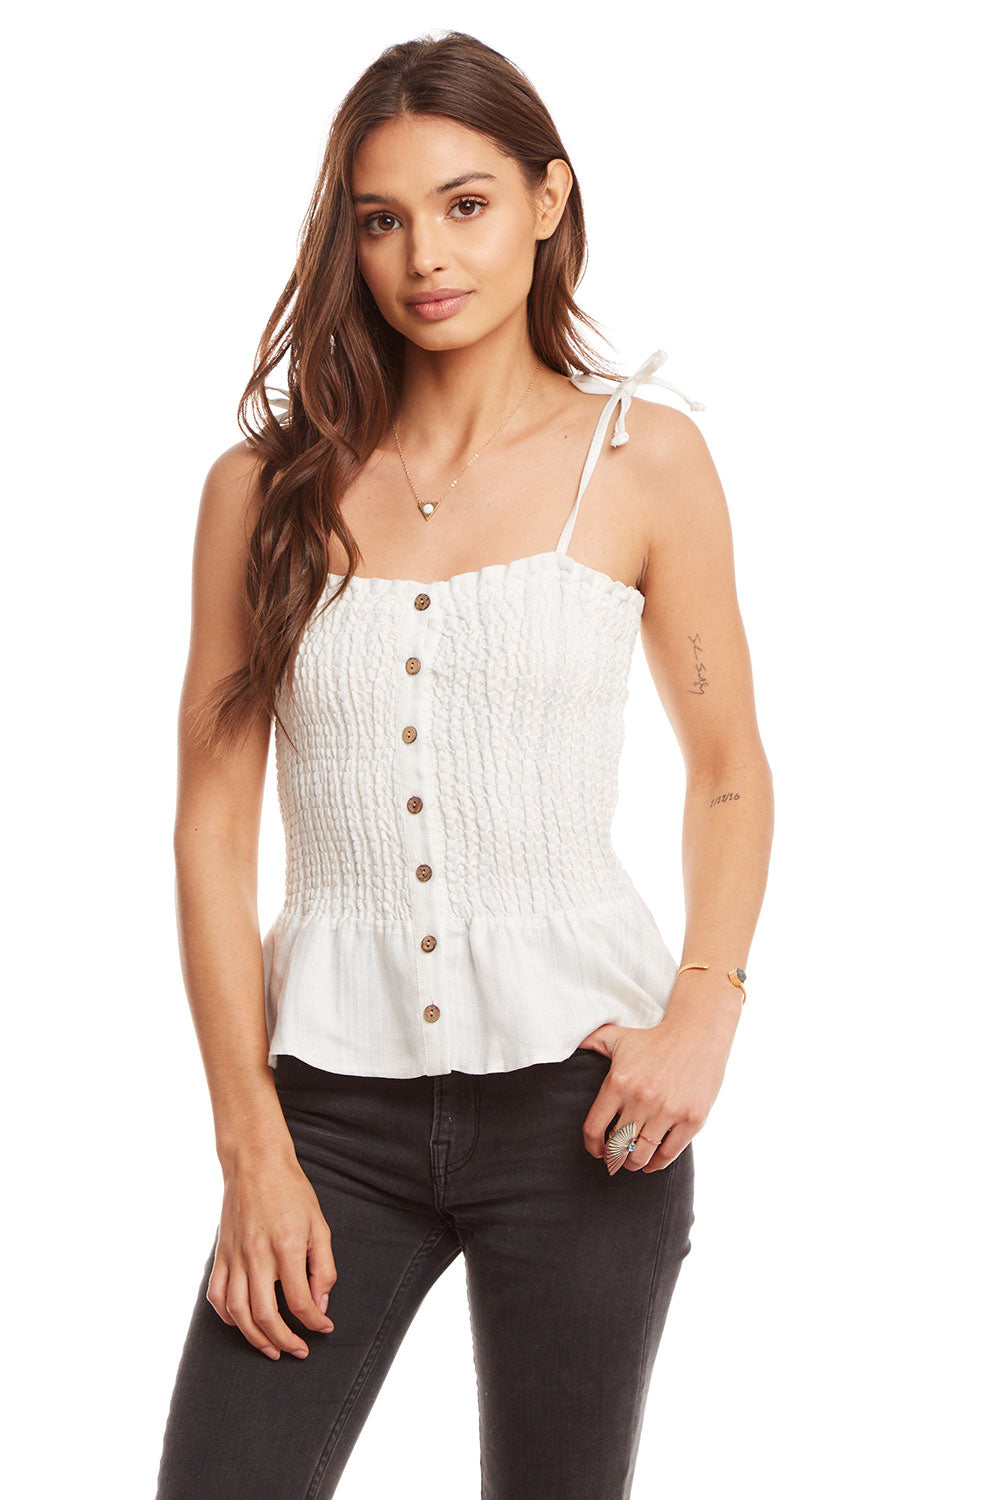 Beachy Linen Smocked Tie Strap Button Front Peplum Cami WOMENS chaserbrand4.myshopify.com